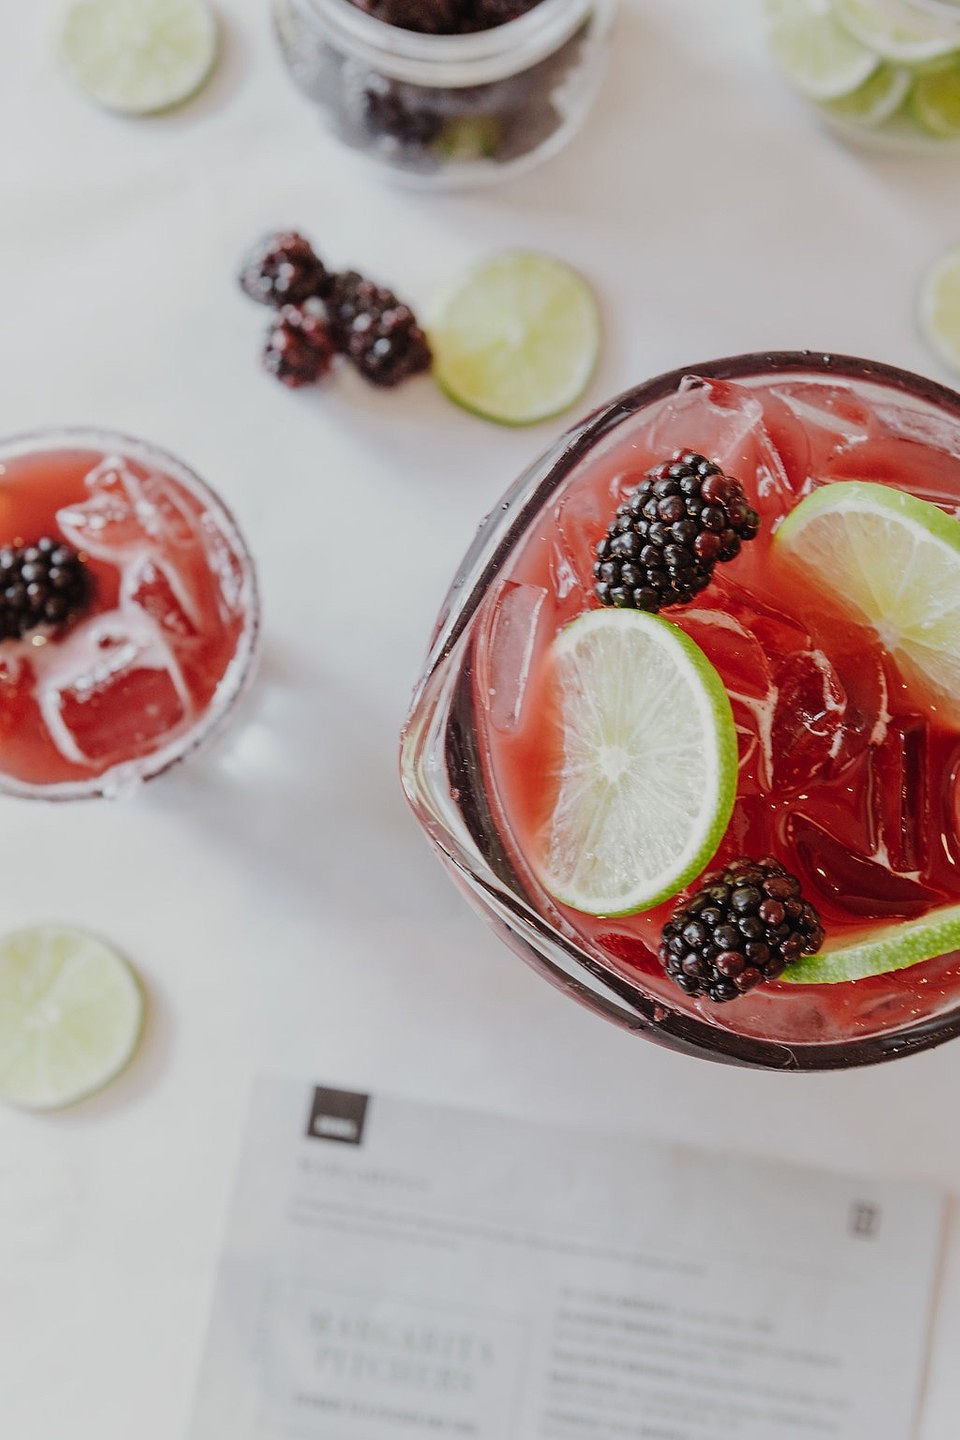 Blackberry Margarita pitcher with Lime Wheels and Blackberries as garnish.